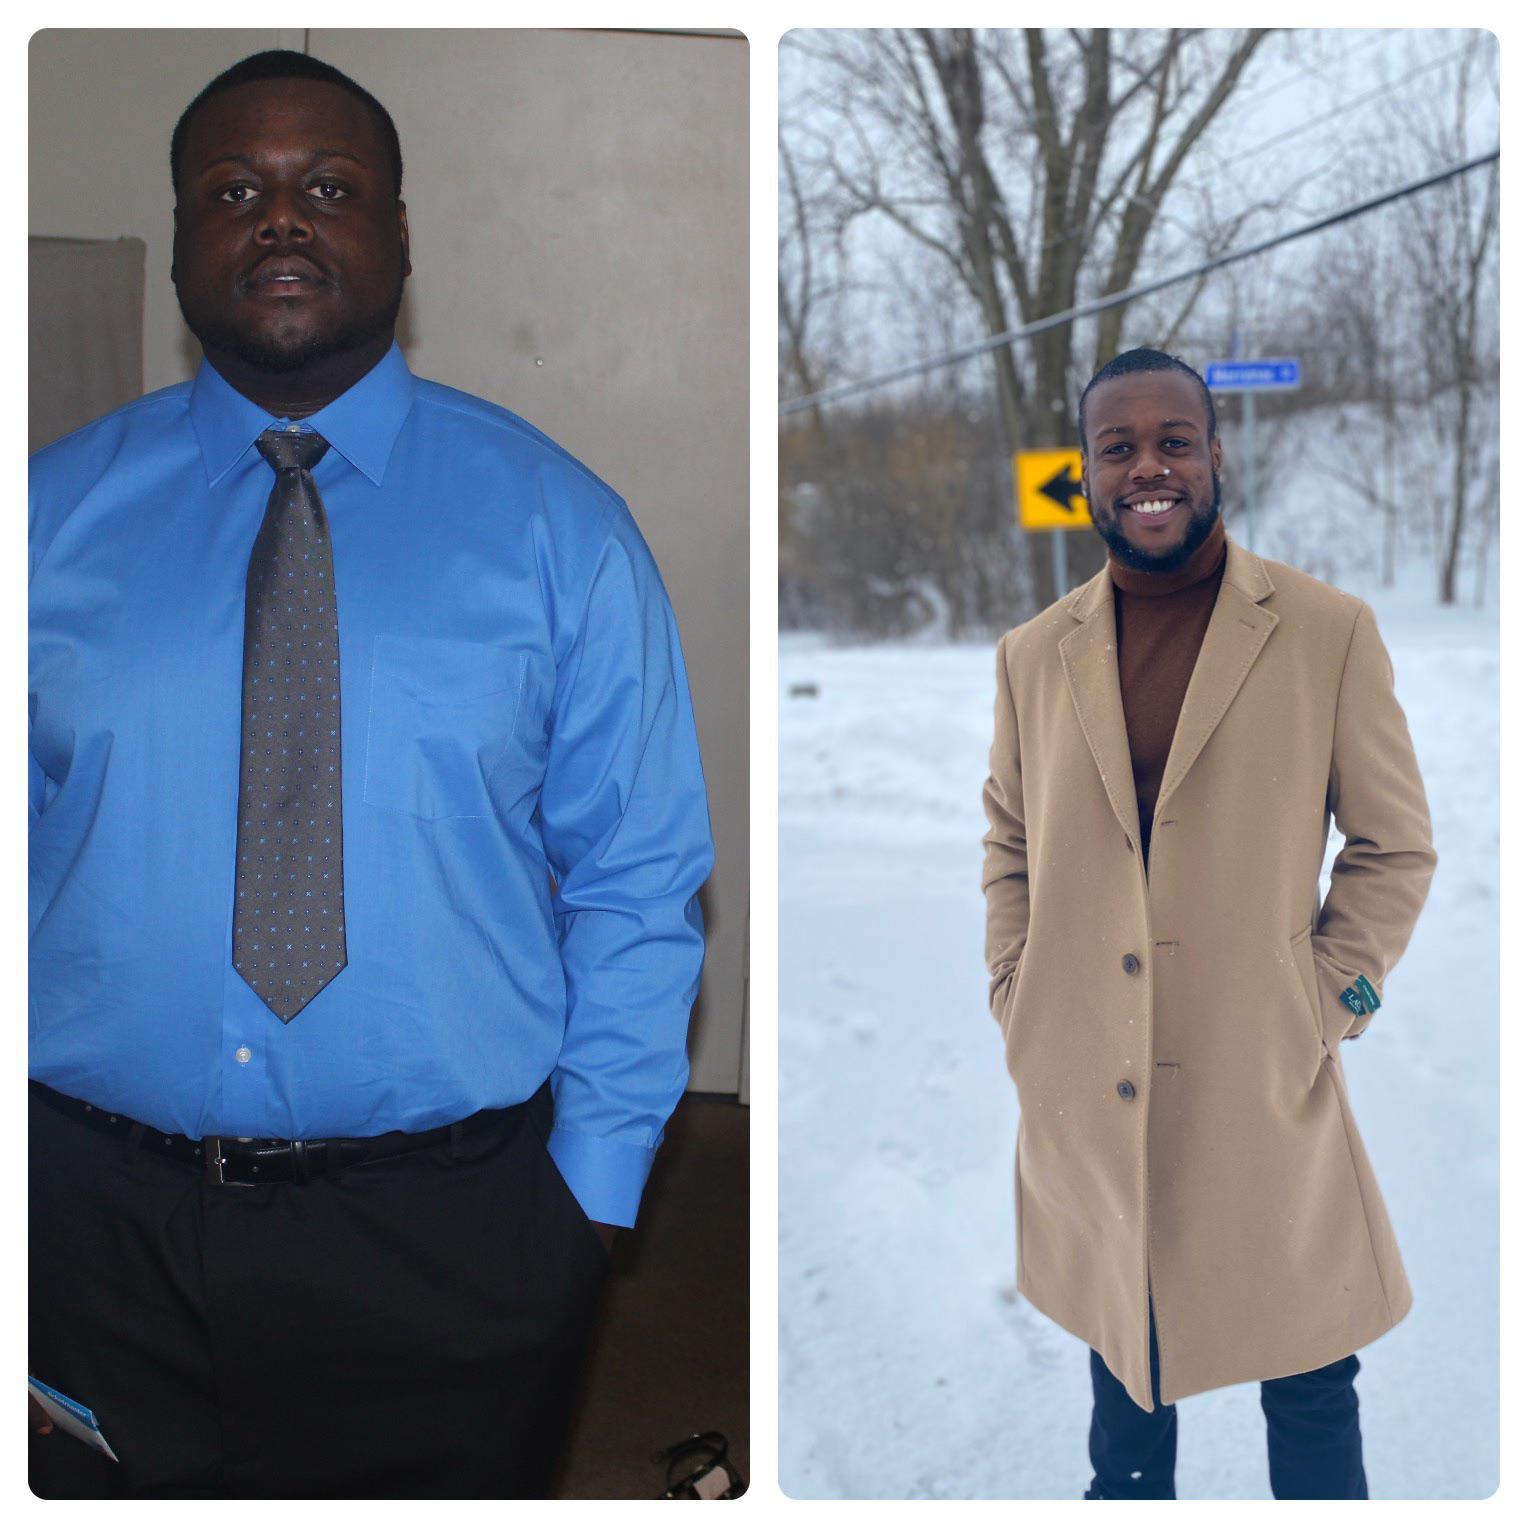 Before and After 140 lbs Weight Loss 5'10 Male 330 lbs to 190 lbs